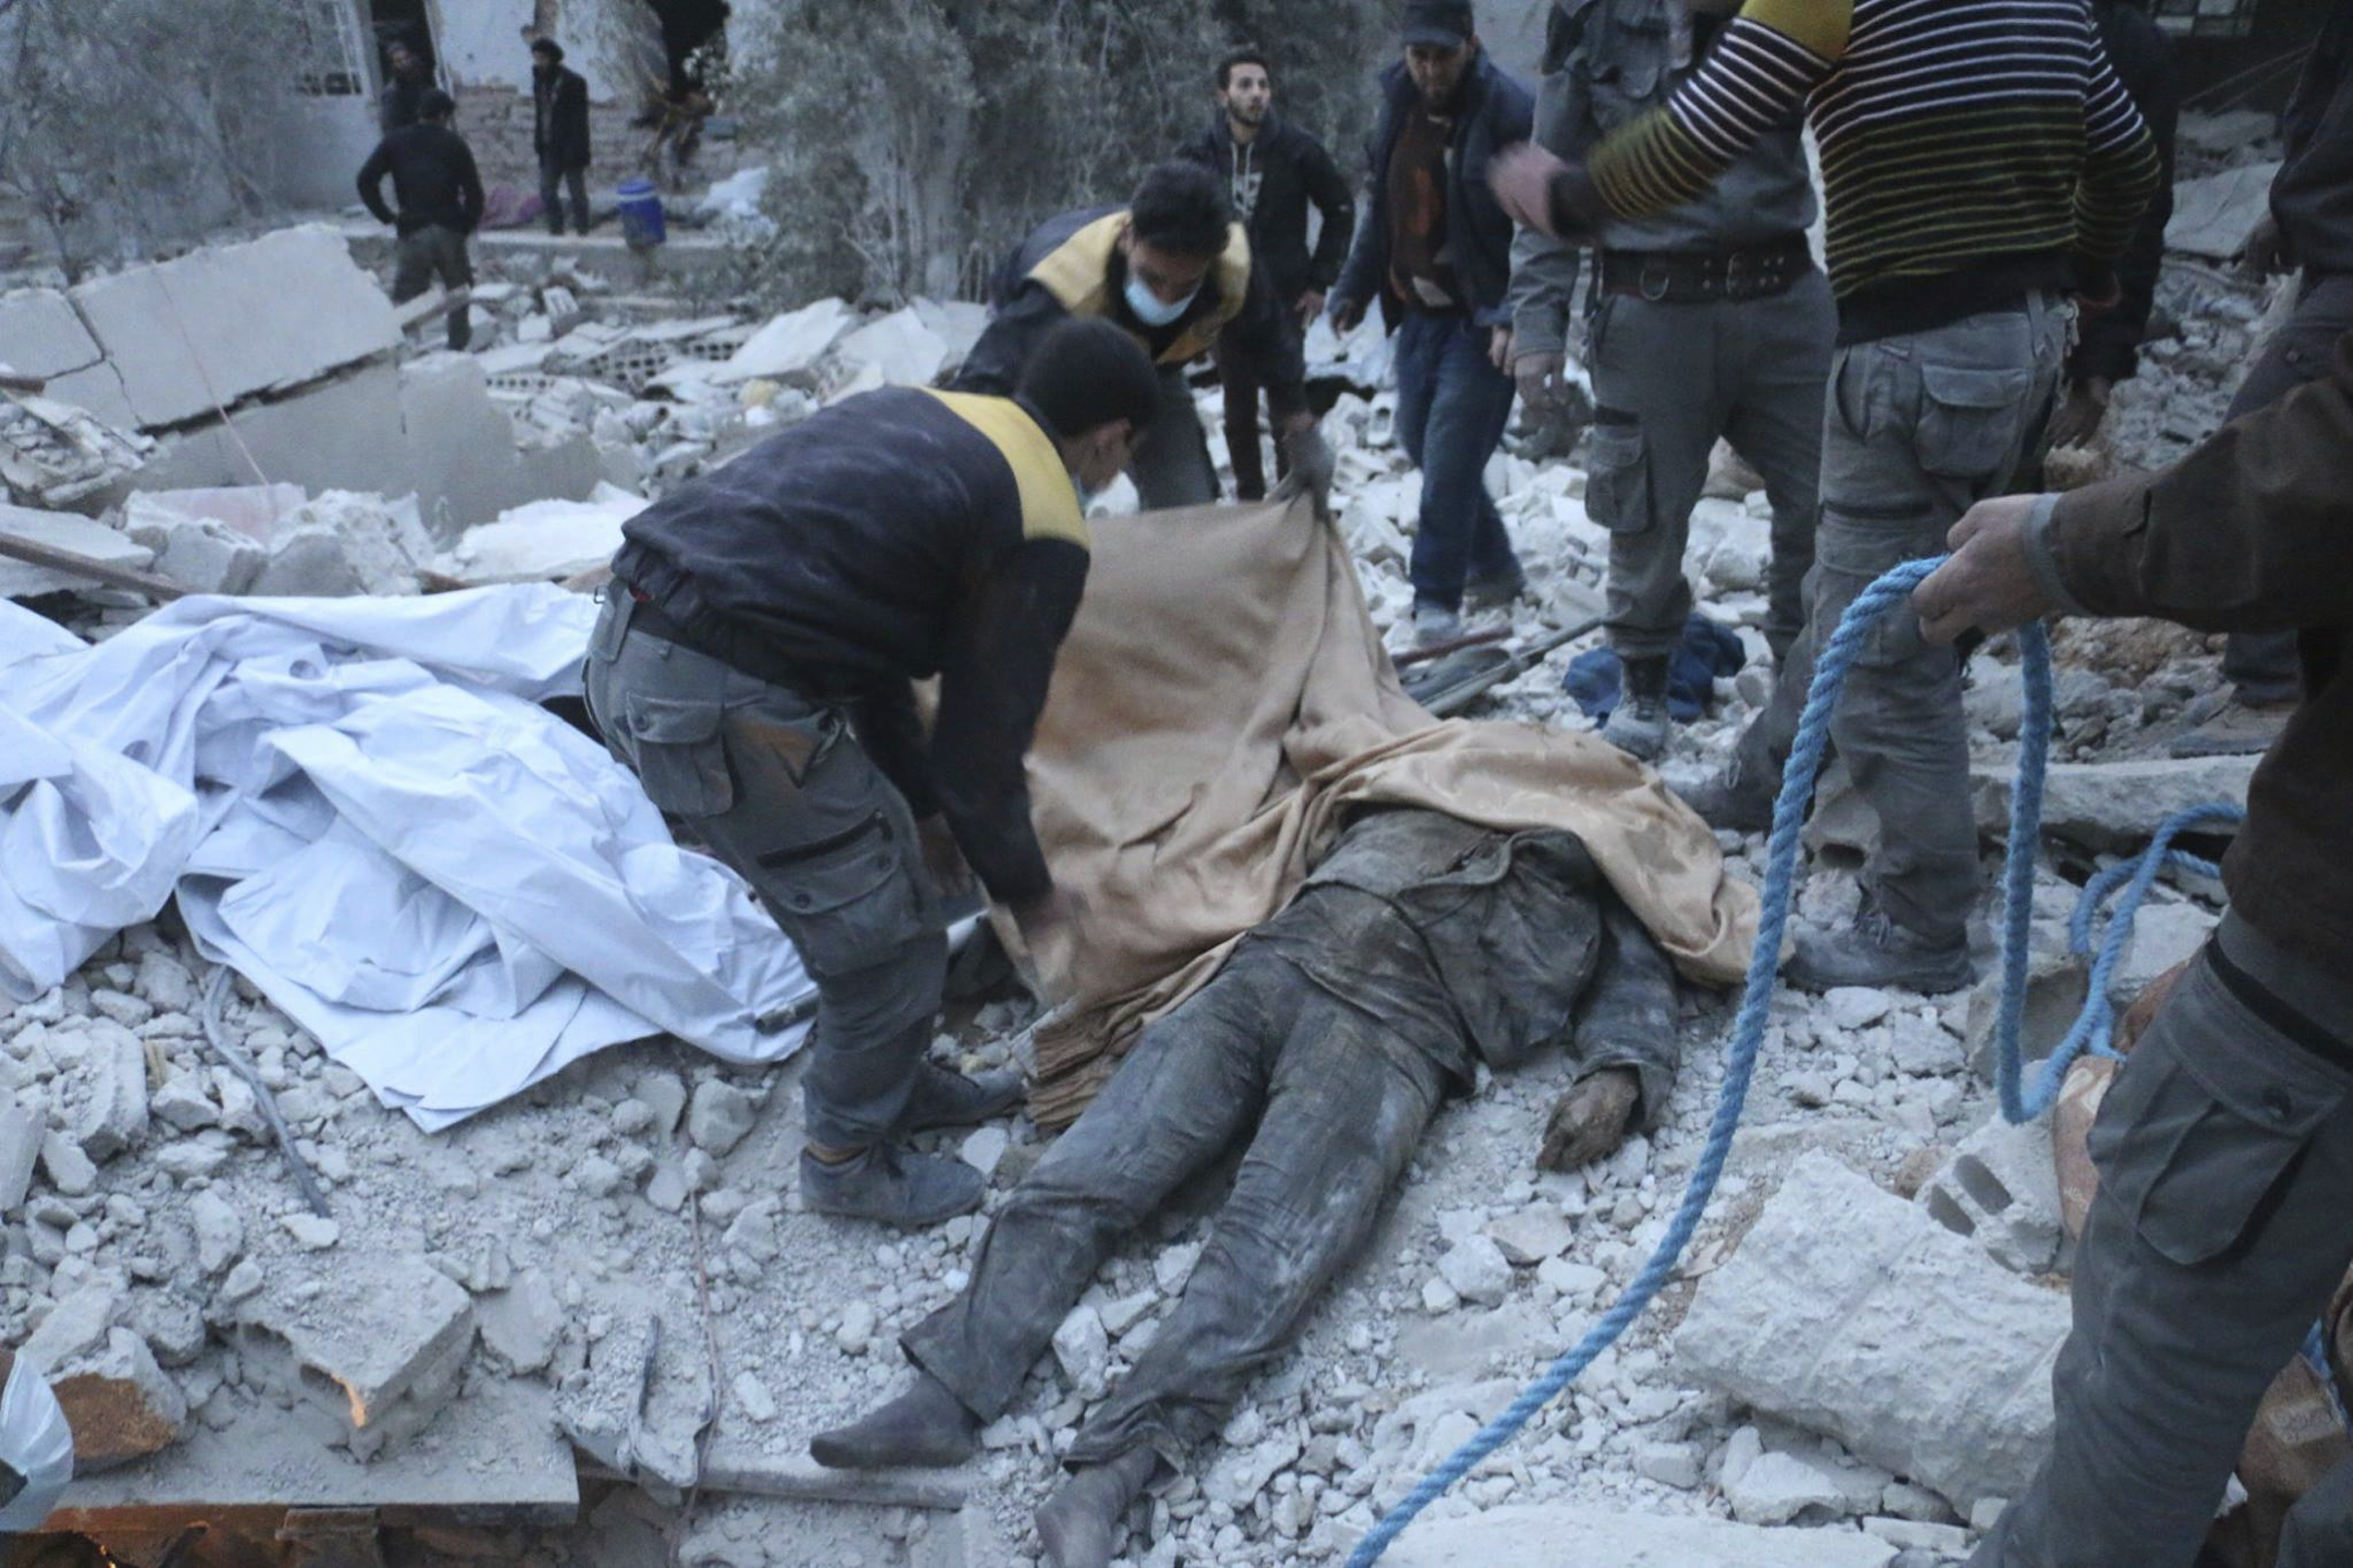 FILE - This photo released Feb. 20, 2018, by the Syrian civil defense group known as the White Helmets shows members of the group removing a victim from under the rubble of a damaged shelter that was attacked during airstrikes and shelling by Syrian ...